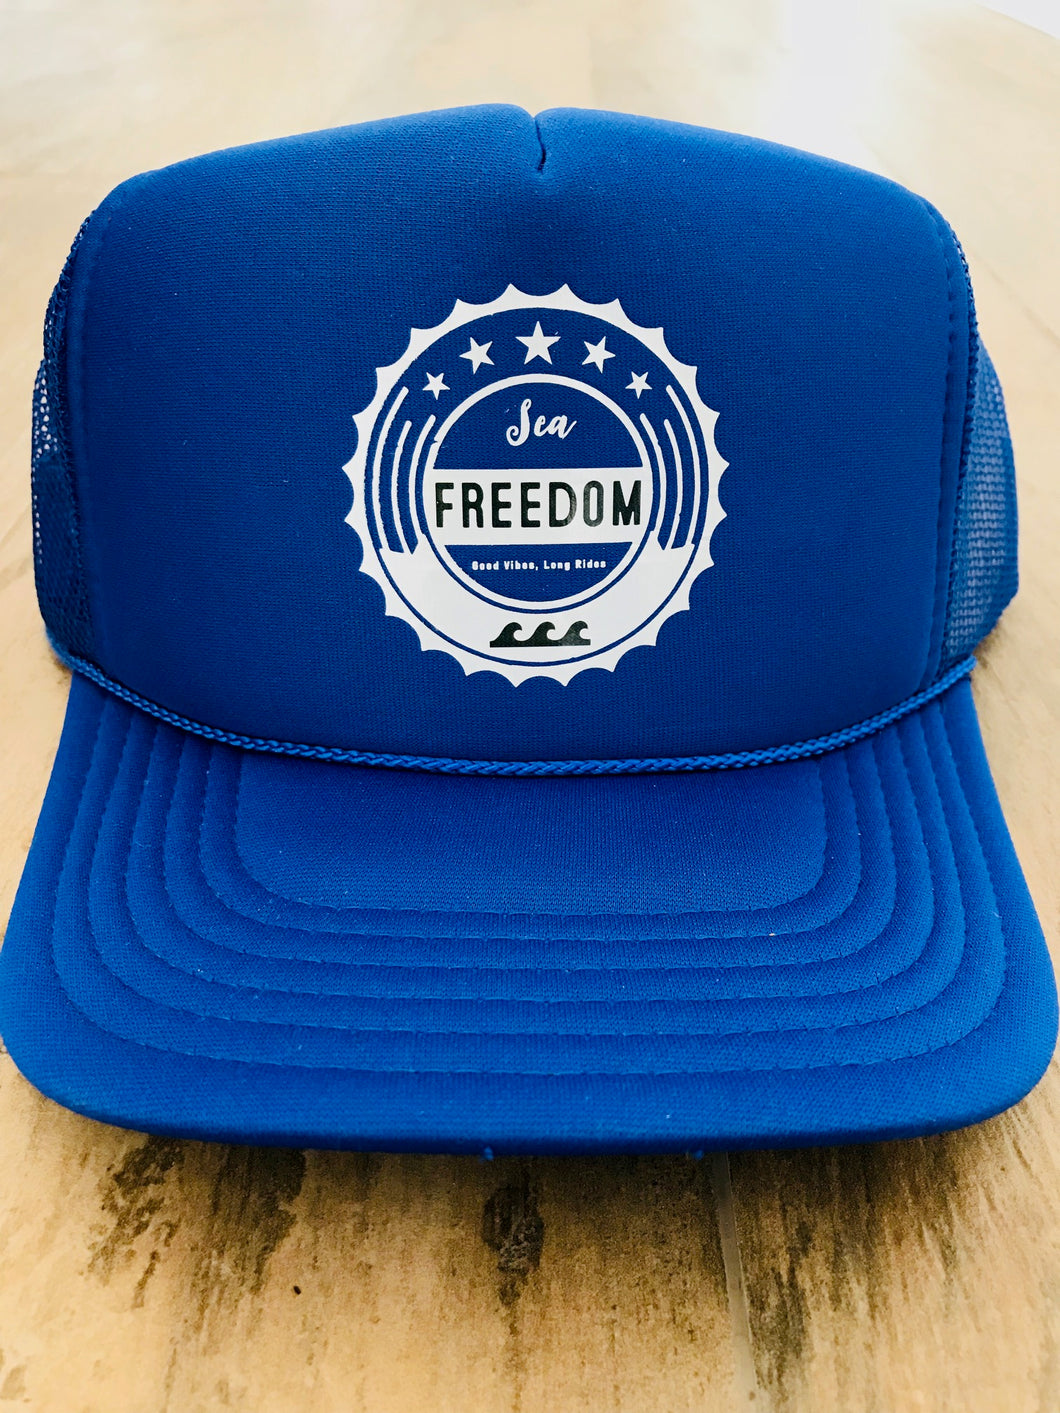 Sea Freedom Trucker Hat